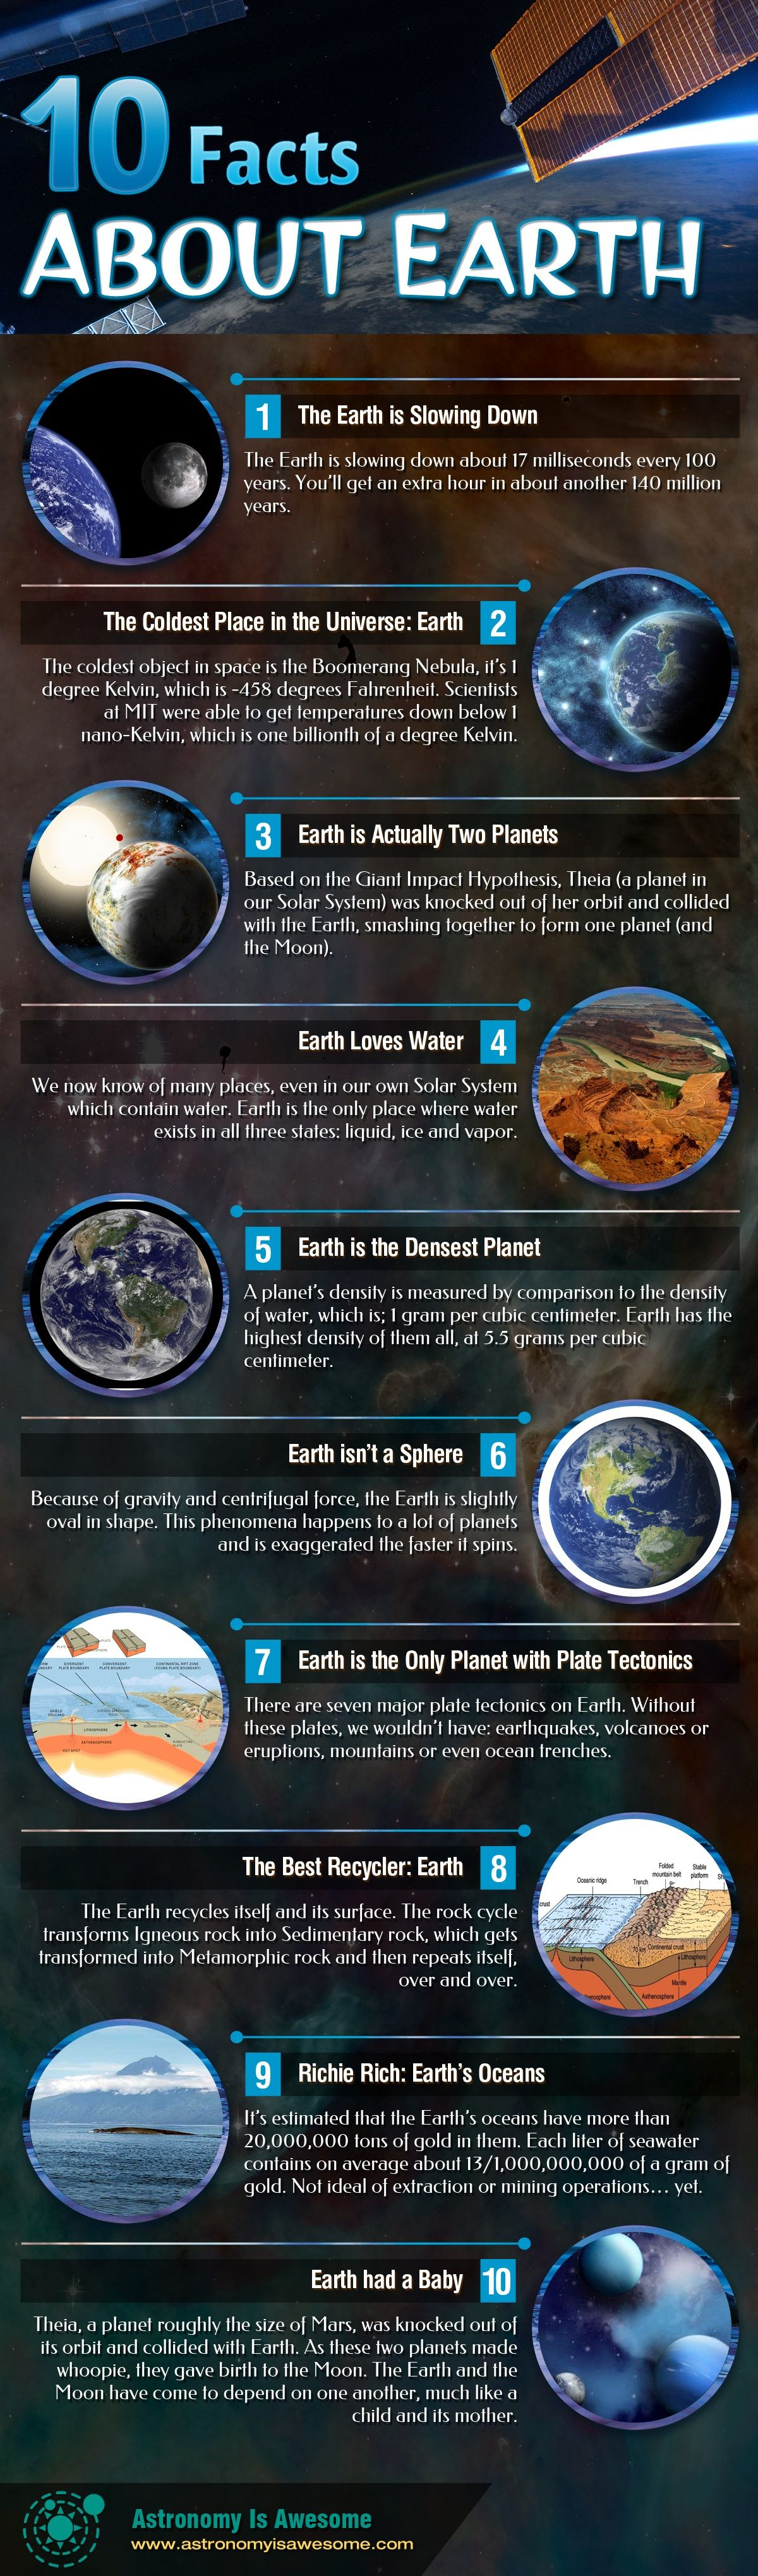 10 Facts About Earth Infographic